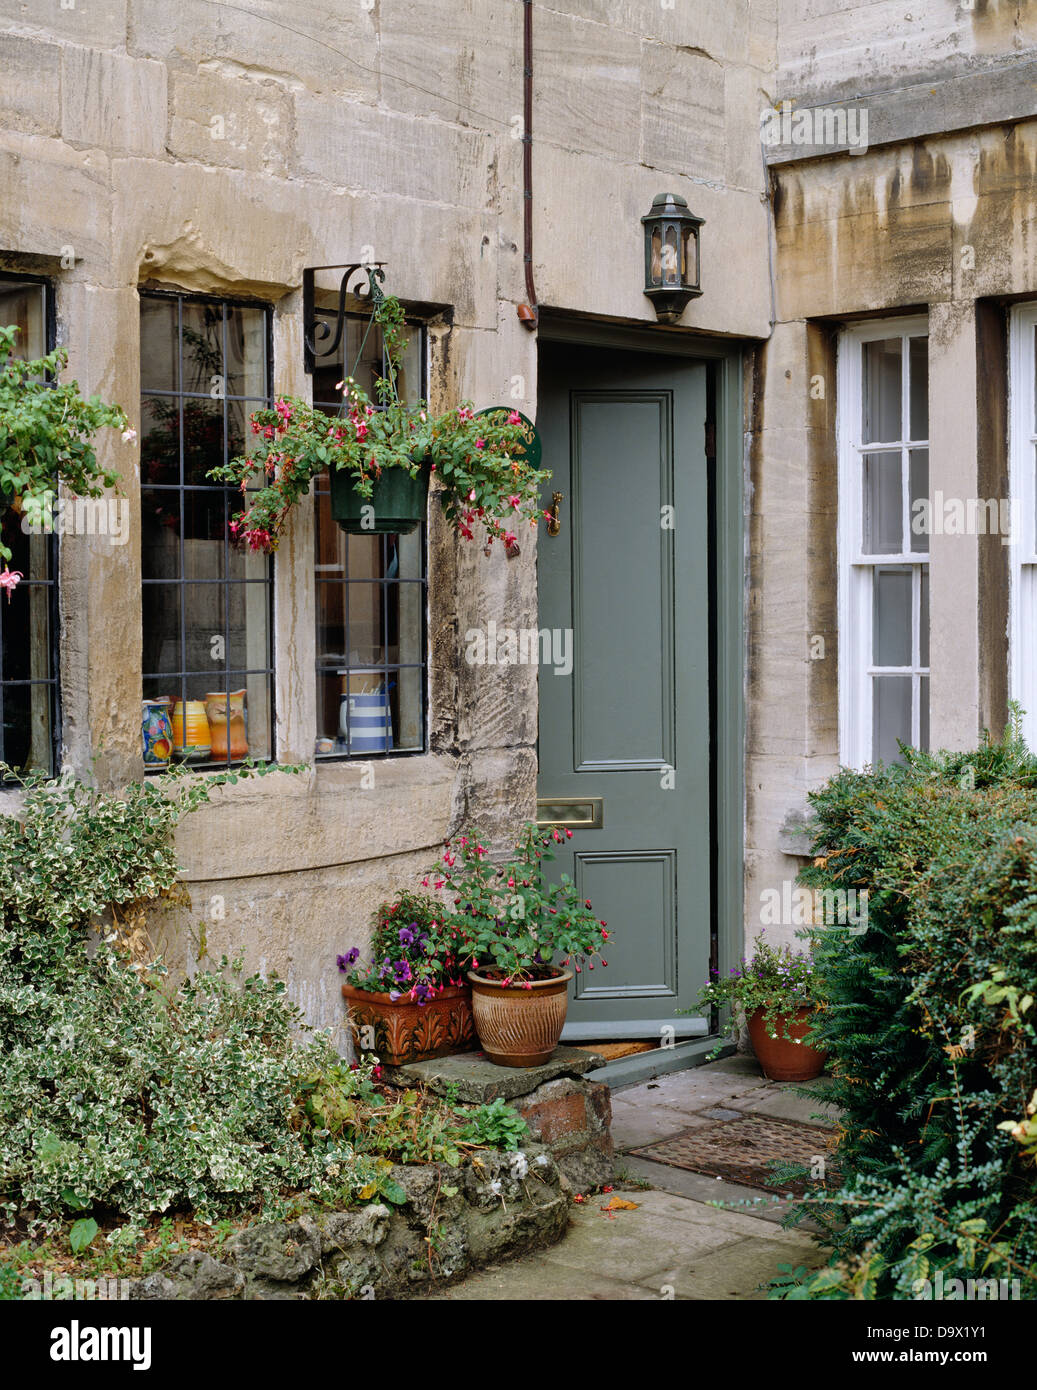 Hanging Baskets Above Window Of Stone Cottage With Gray Painted Open